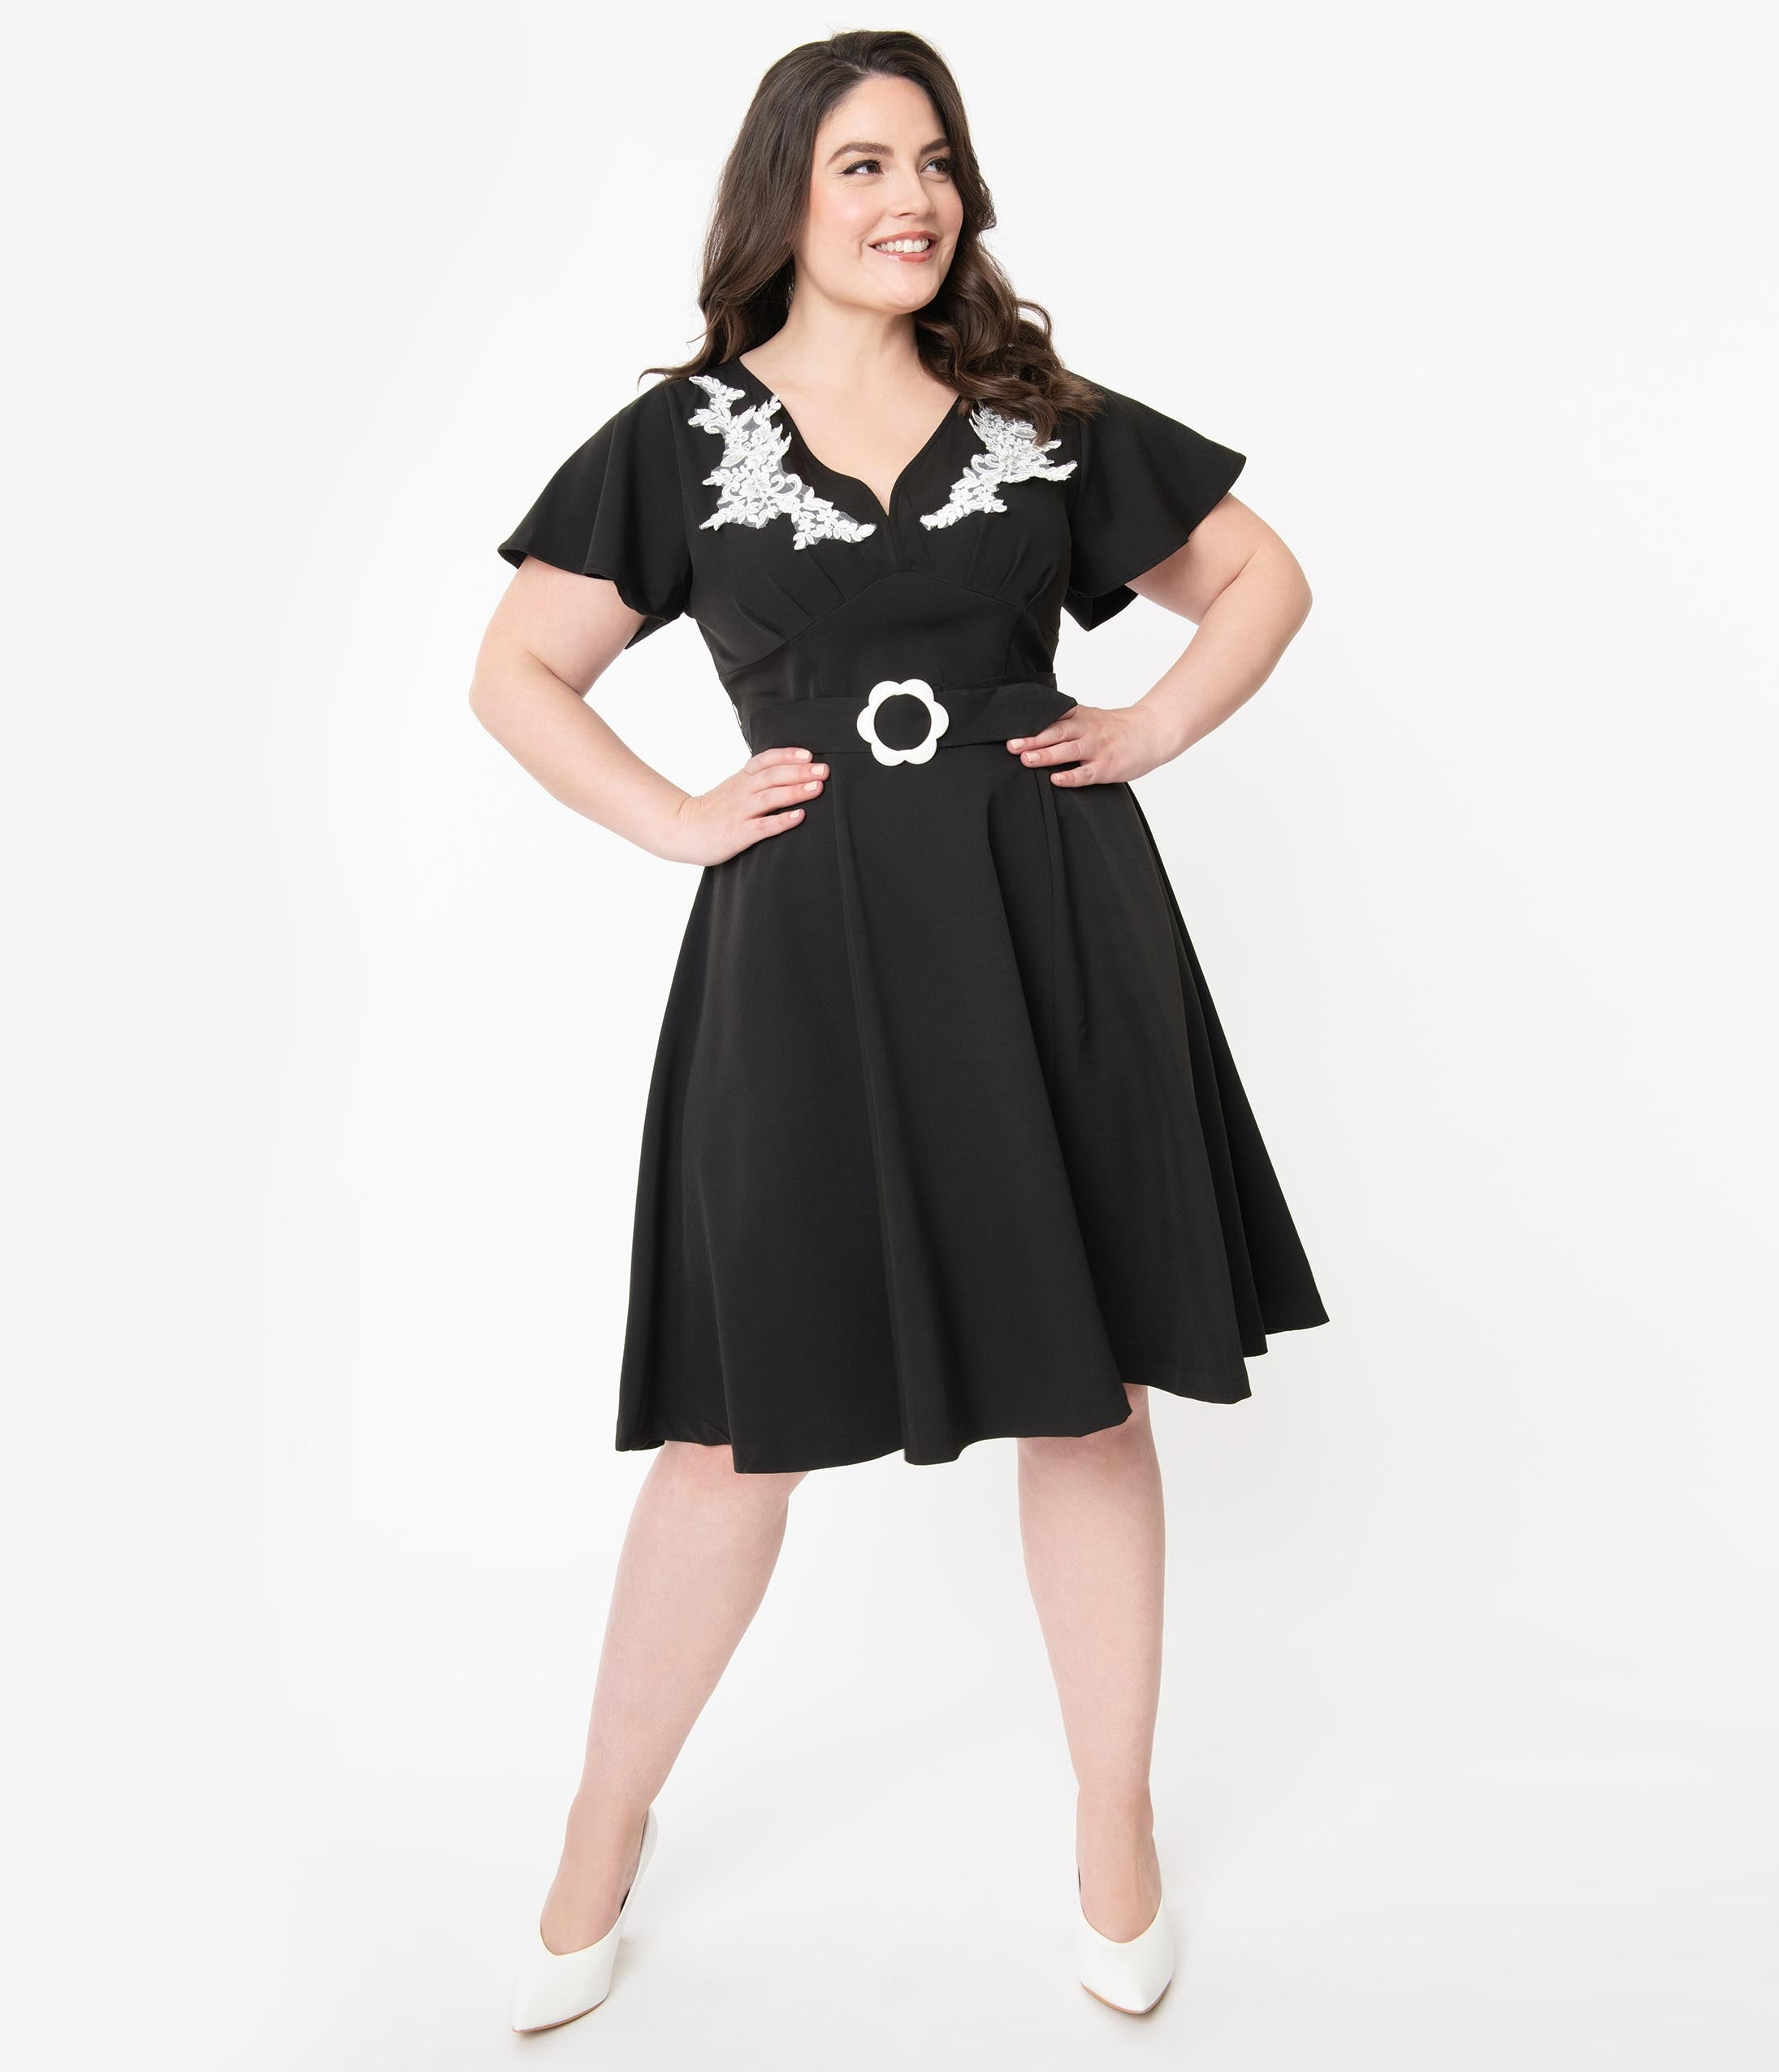 1940s Plus Size Dresses | Swing Dress, Tea Dress Unique Vintage Plus Size 1940S Black  Ivory Embroidered Kay Swing Dress $78.00 AT vintagedancer.com